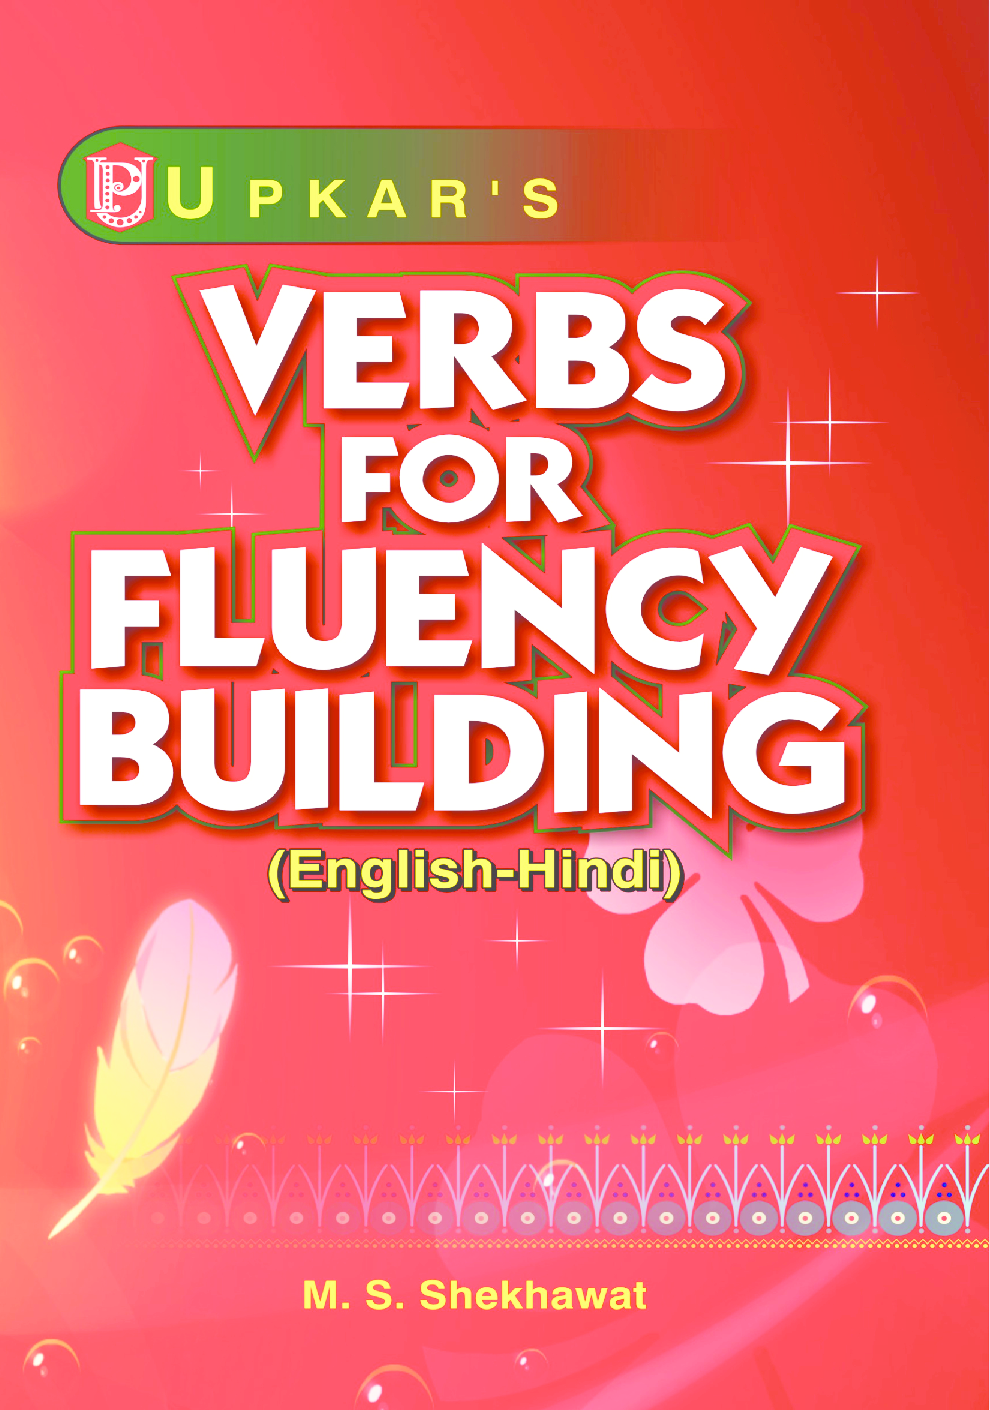 Verbs for Fluency Building (Eng.-Hindi) - Page 1